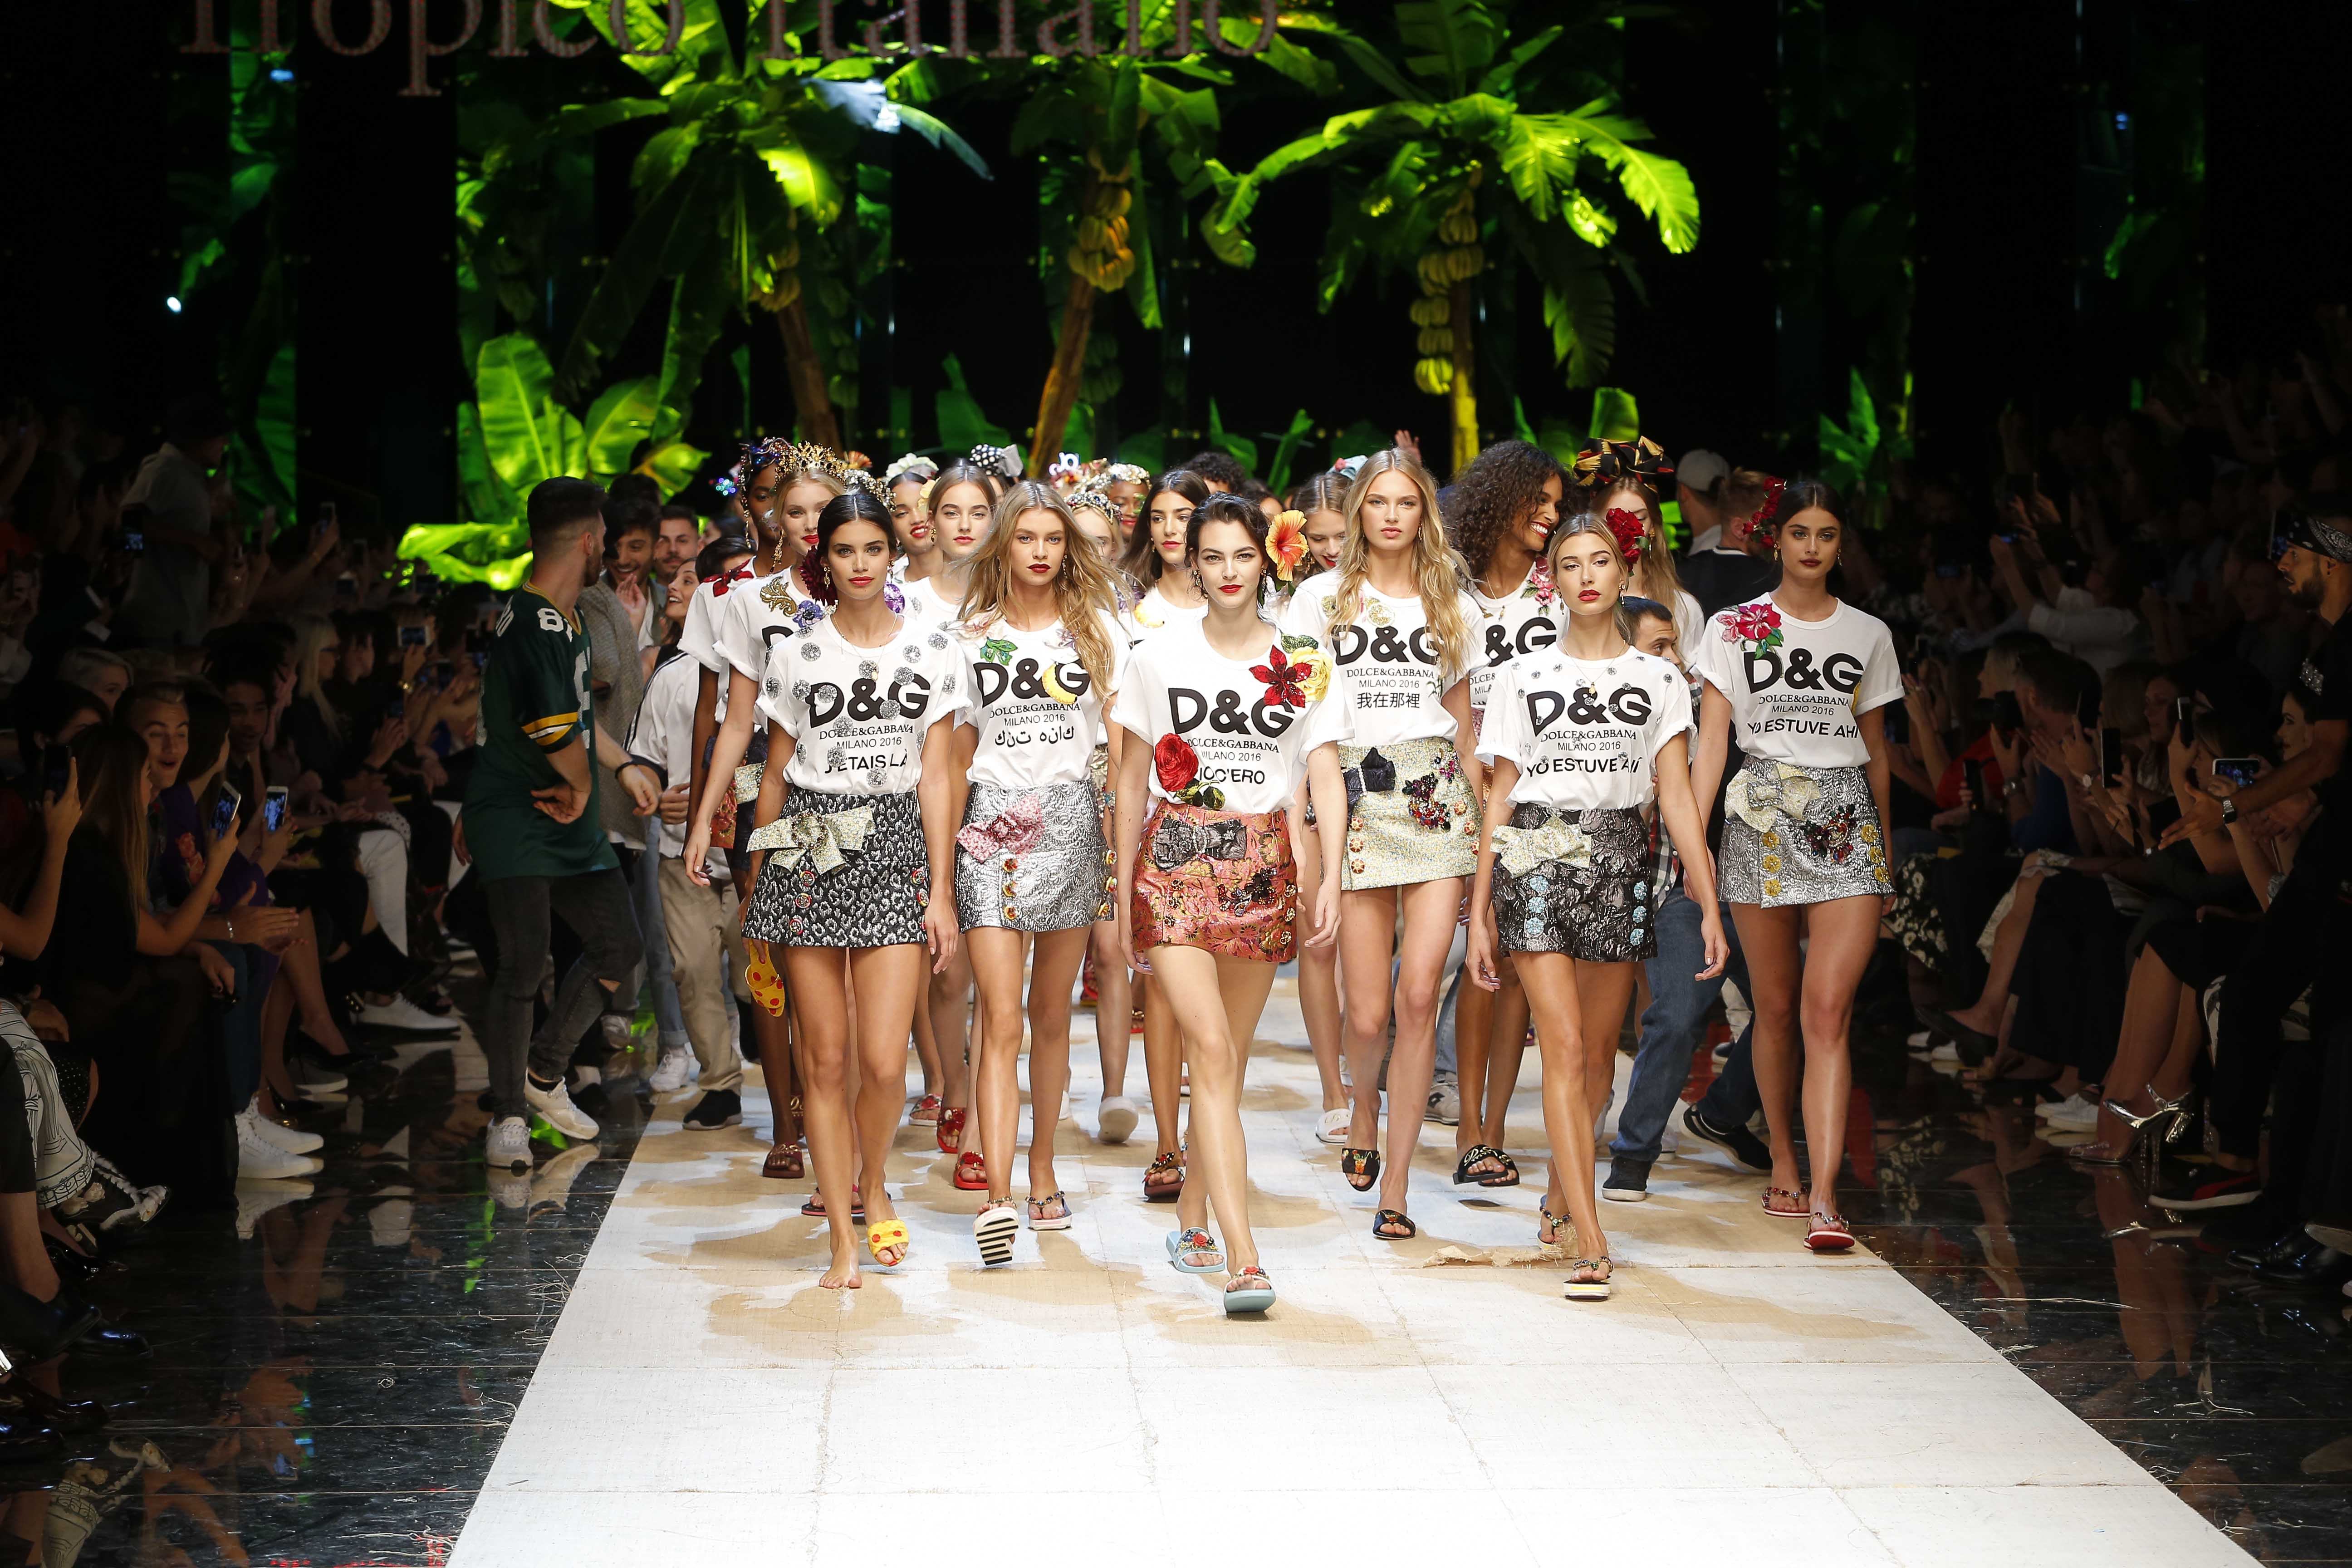 Dolce & Gabbana's spring/summer 2017 collection